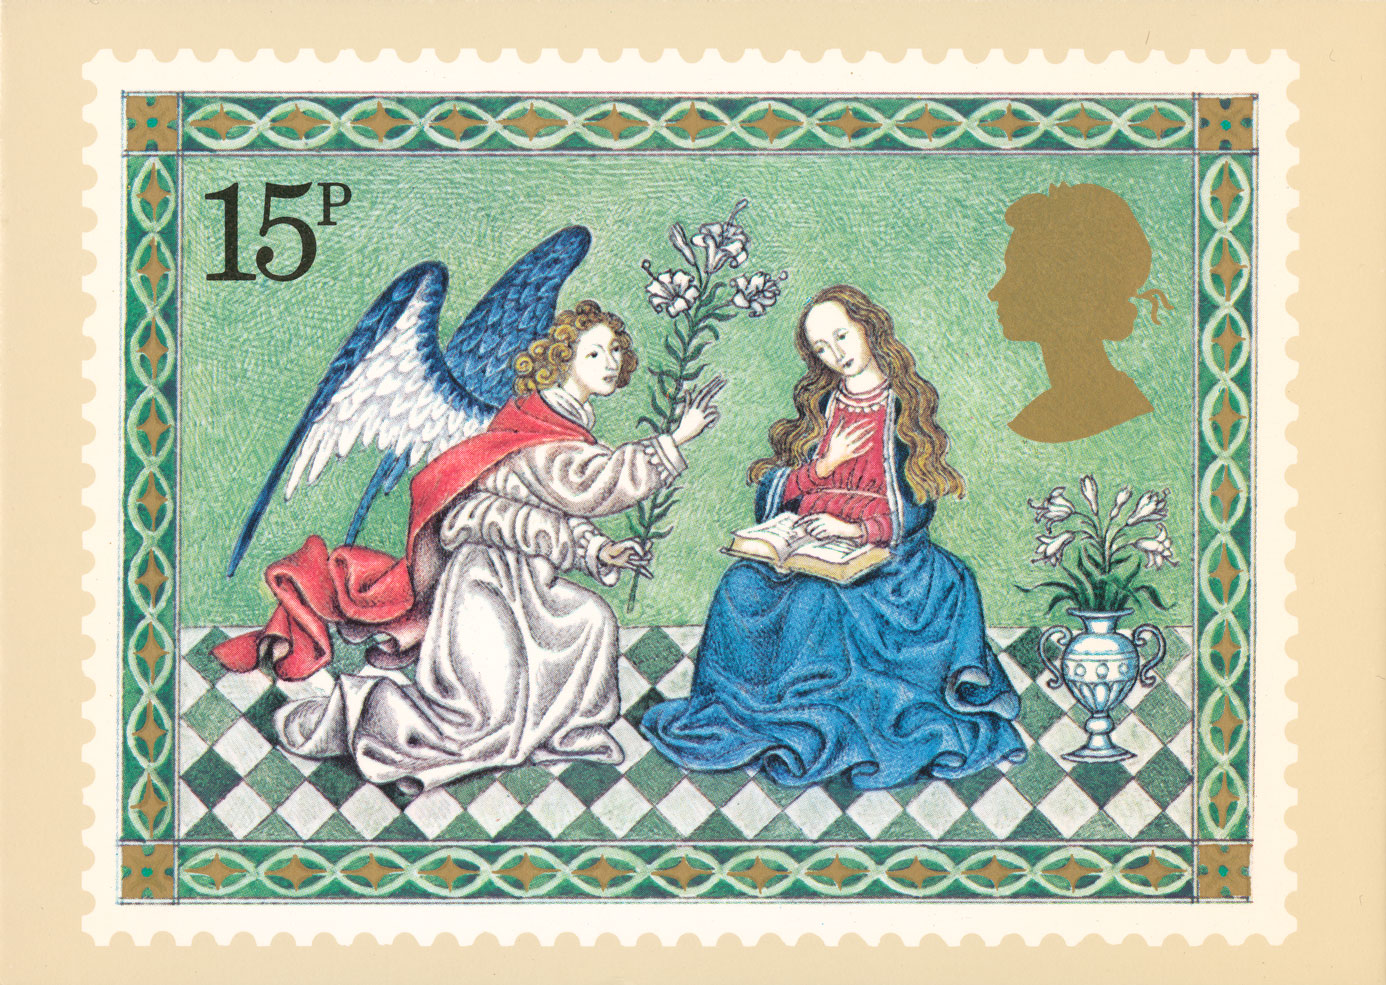 A stamp card depicting a stamp of the annunciation featuring an angel kneeling in front of the Virgin Mary.